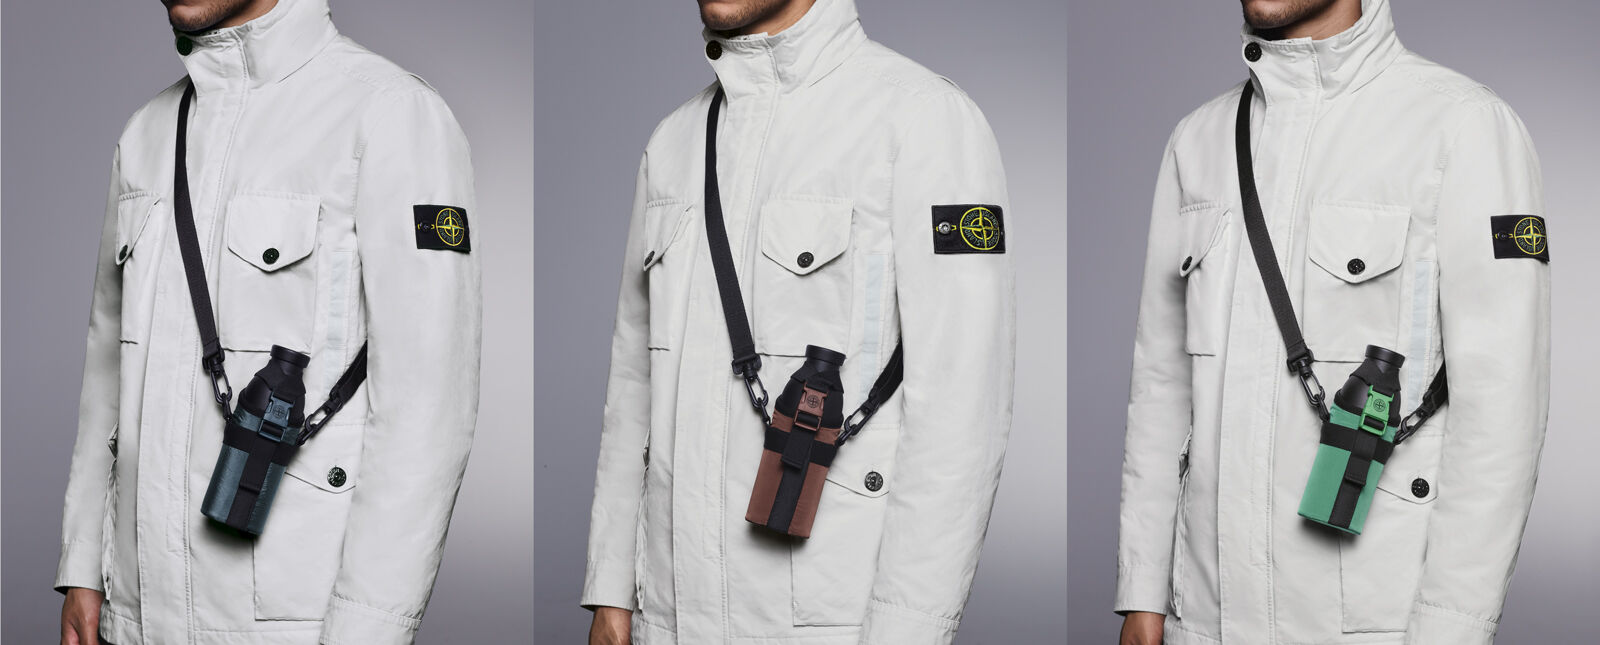 Three shot of a the same model wearing an off white jacket with standing collar, four pockets with flap and button and a water bottle carrier holder with cross body straps in dark blue, copper and bright green.